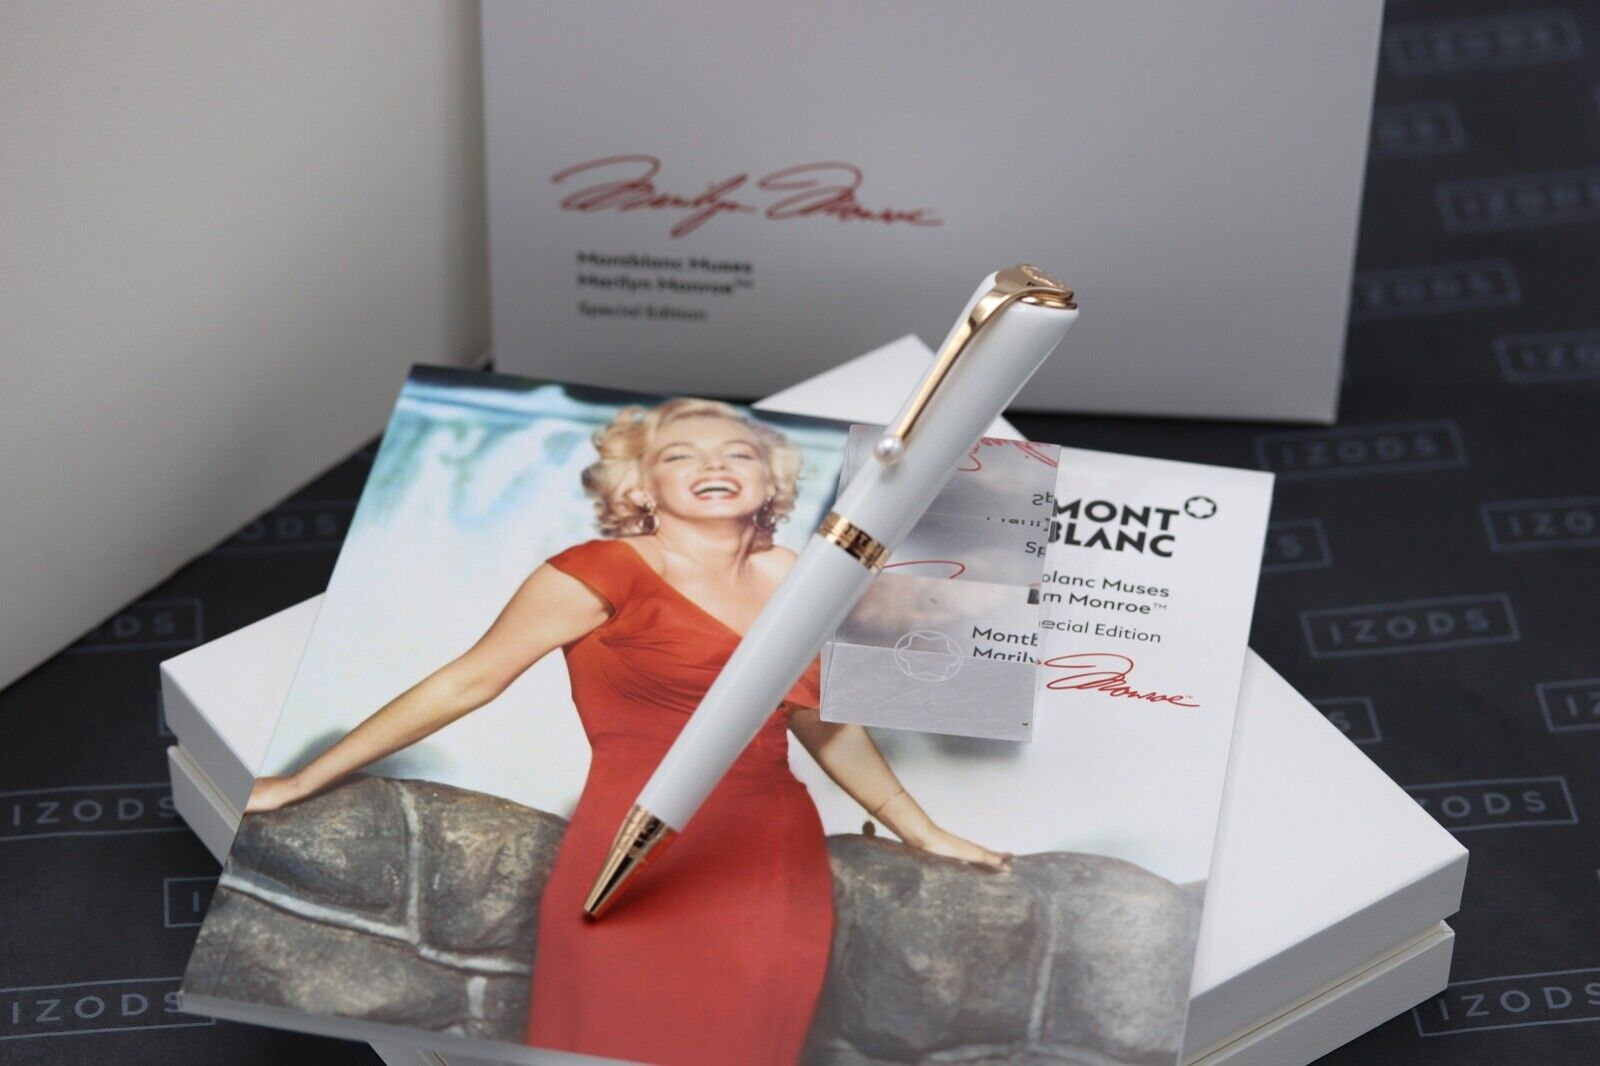 Montblanc Muses Edition Marilyn Monroe Pearl Ballpoint Pen - NEW MARCH 21